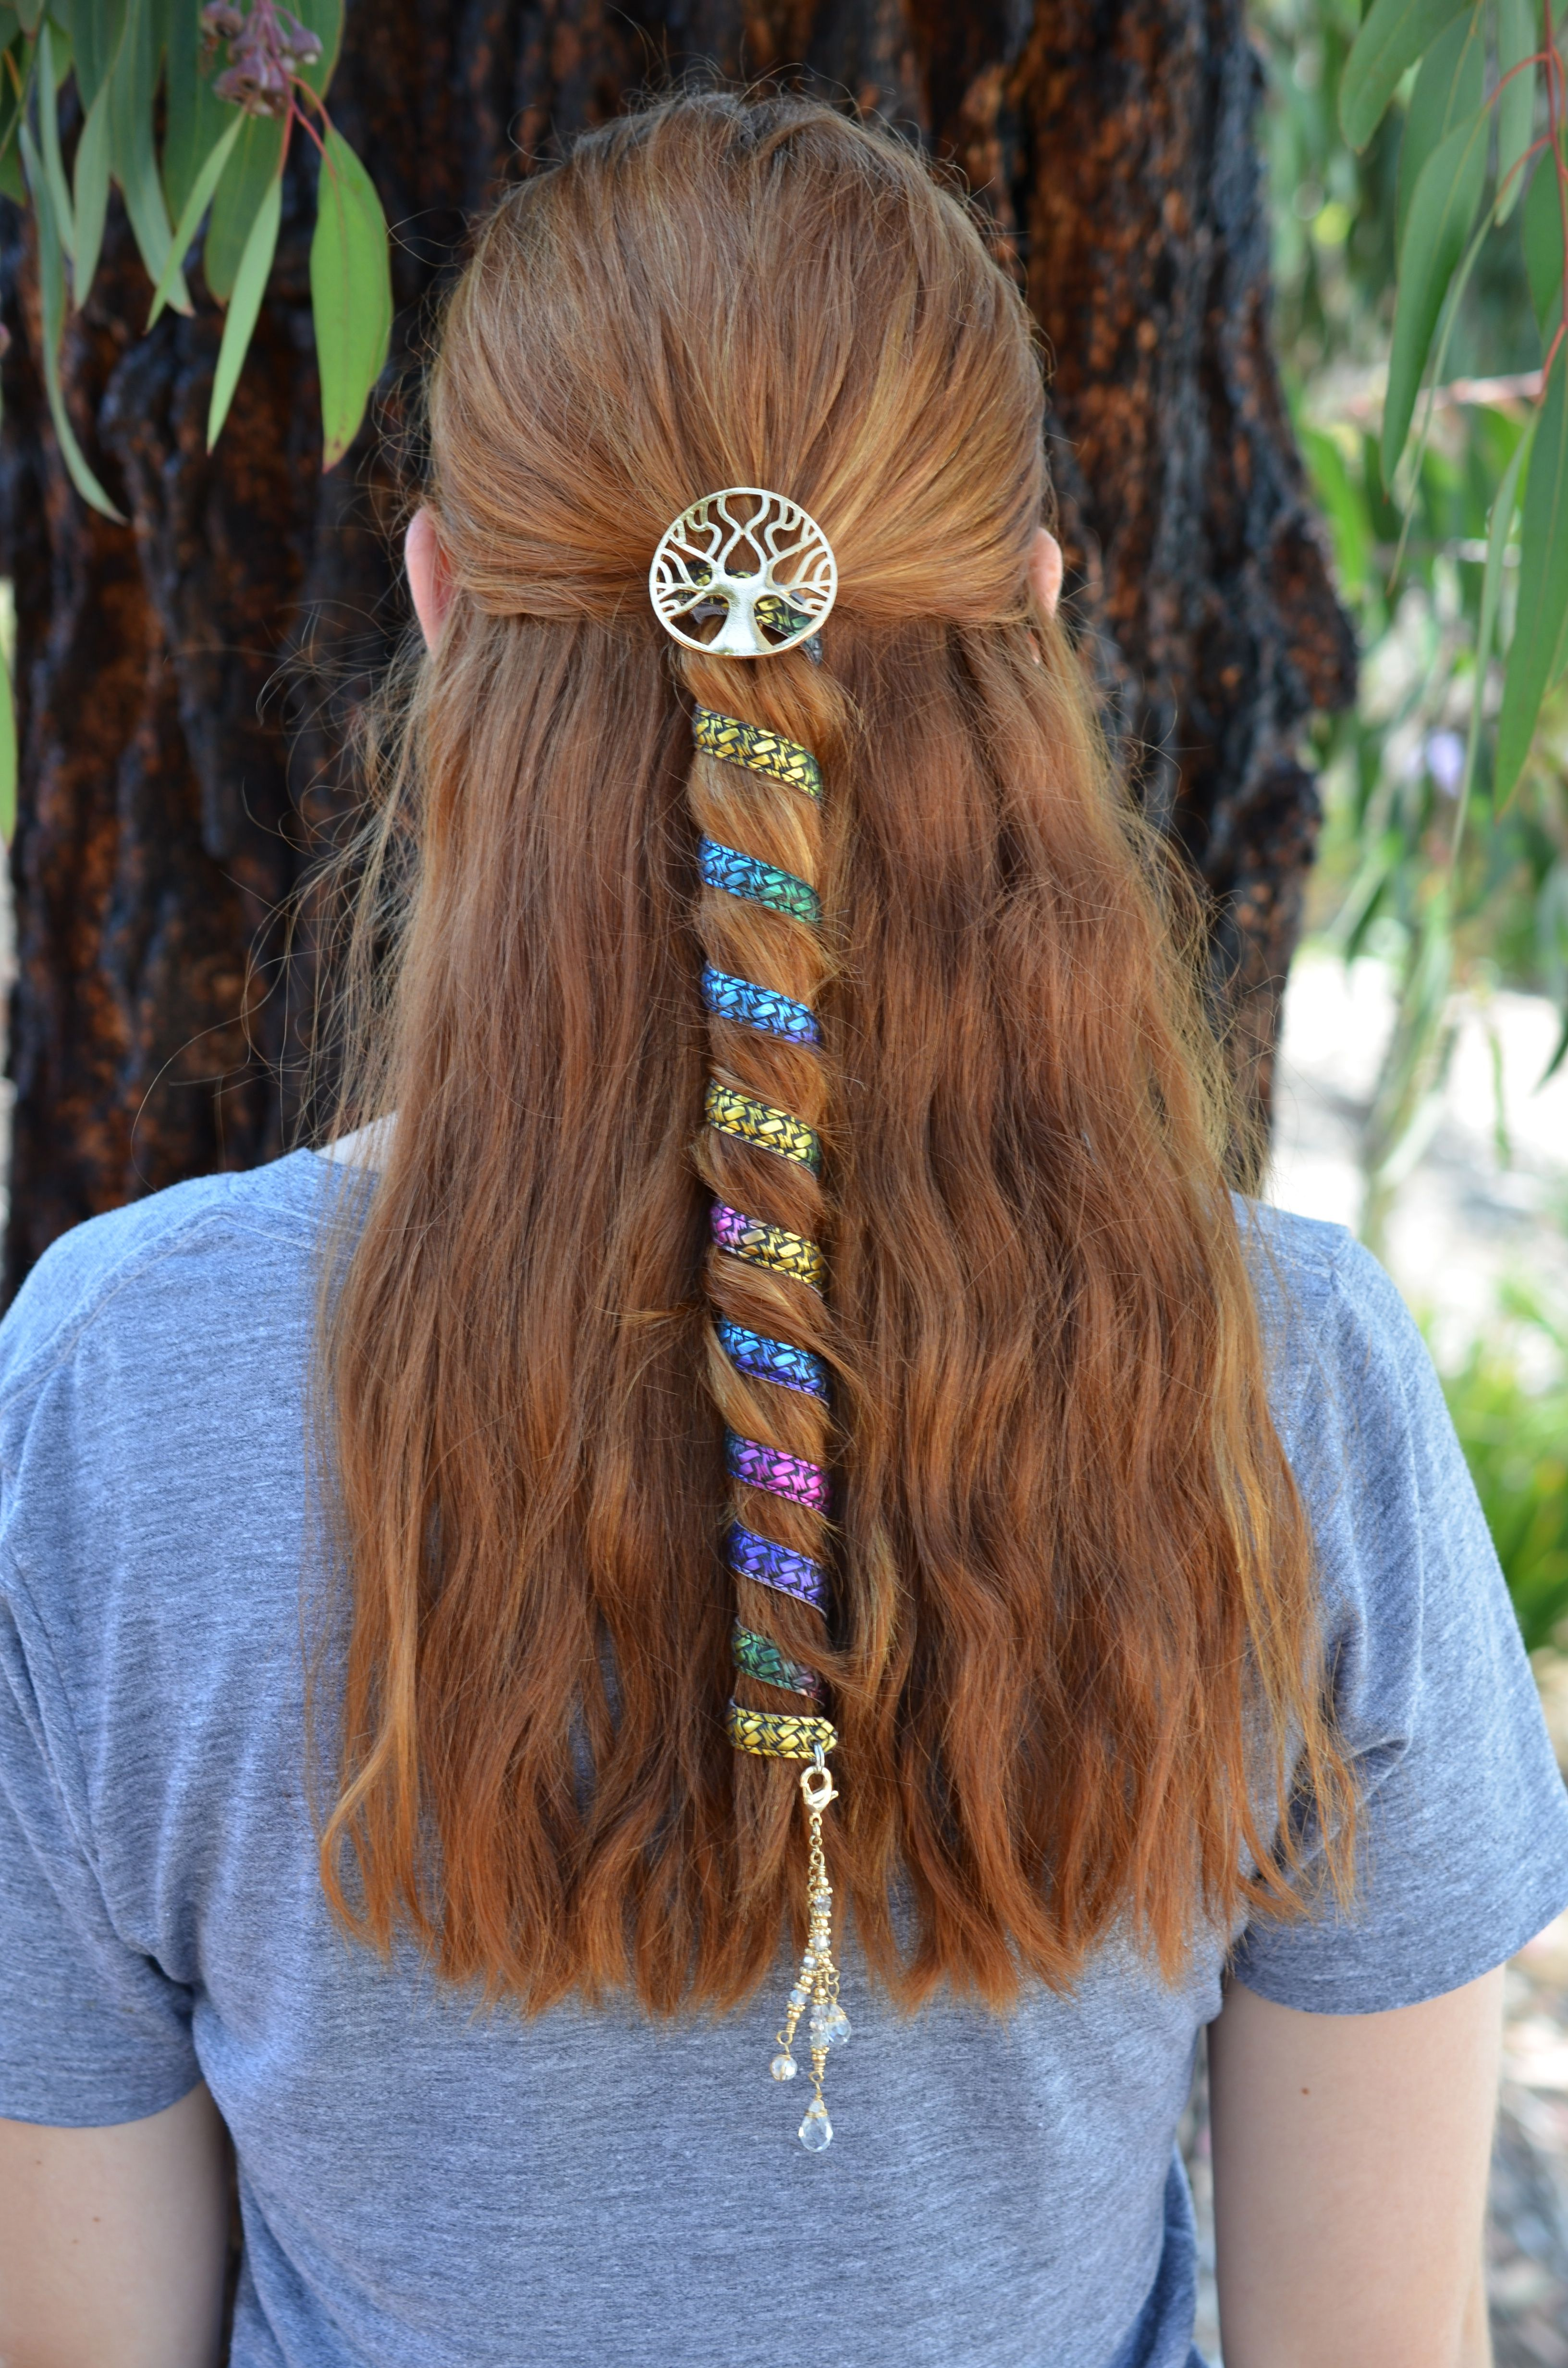 Ponytail Wrap Rainbow Woven Leather  12 Inch Ponytail Holder is part of Ponytail wrap, Hair scarf styles, Headband hairstyles, Hair twisters, Scarf hairstyles, Shaved hair designs -